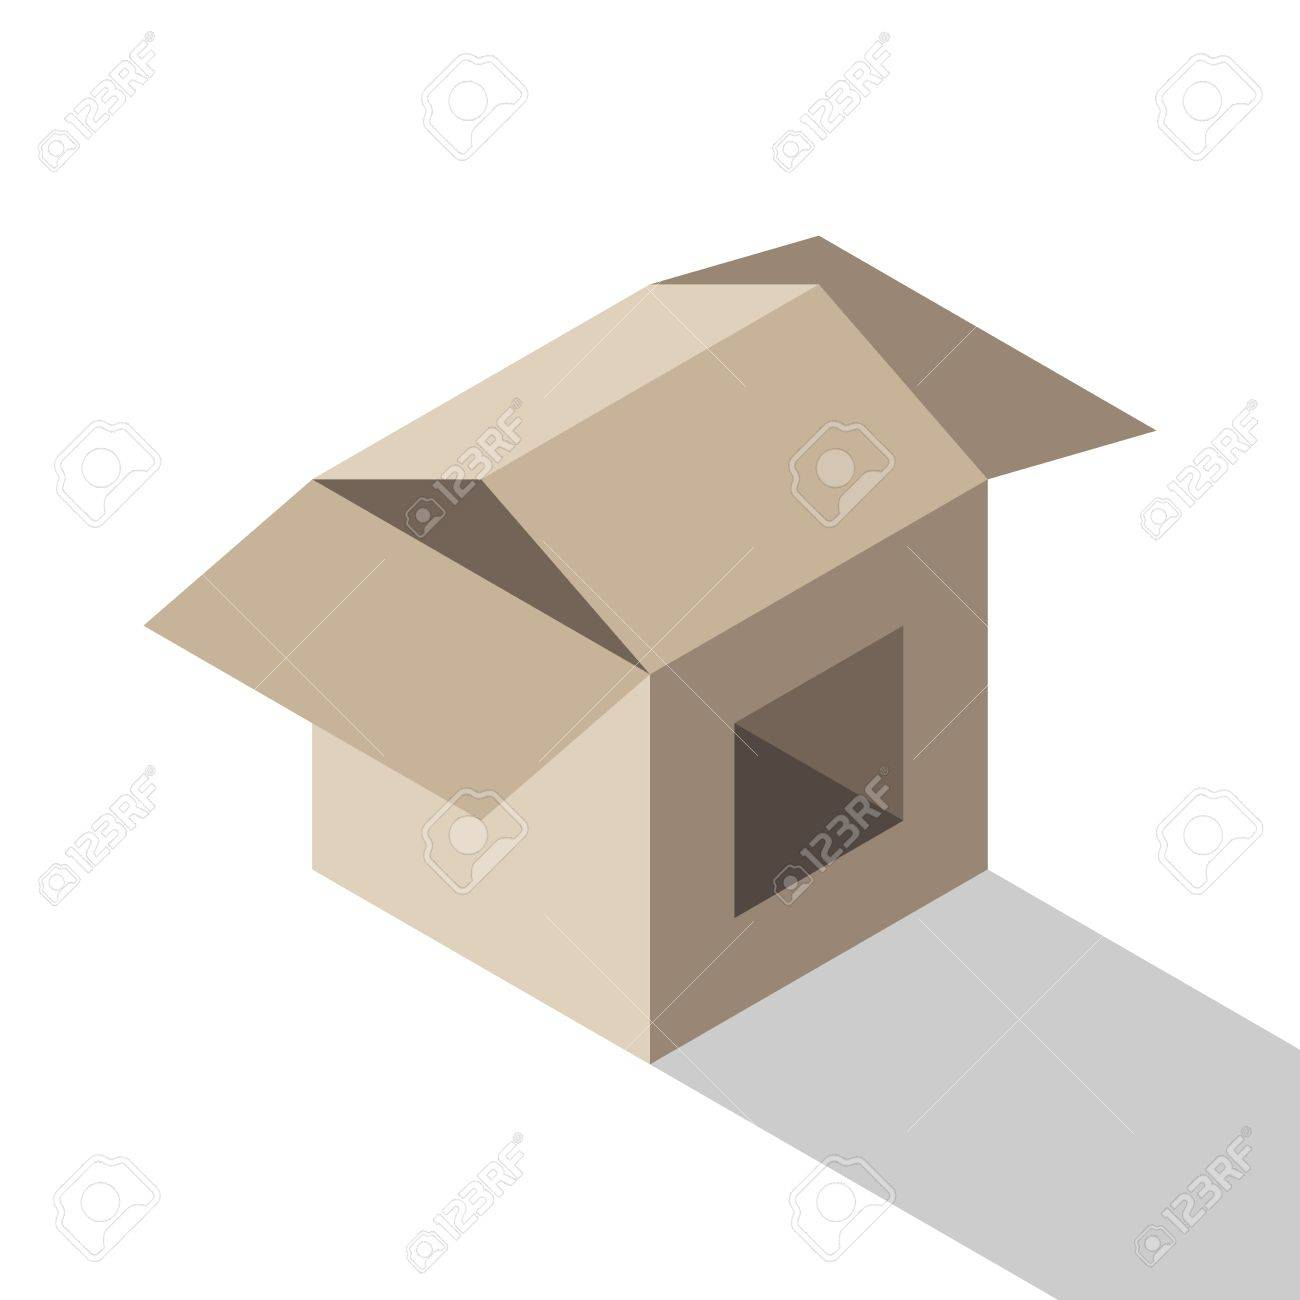 Cardboard Box House Designs on college house designs, simple box house designs, cardboard sculpture designs, cardboard village houses, shoe box house designs, cardboard houses and shelters, cardboard structure designs, prison cell house designs, cardboard house ideas, cardboard house template, cardboard buildings, cardboard house patterns, boxcar house designs, tube house designs, mcpe house designs, cardboard house plans, playing card house designs, cardboard barn playhouse, paint house designs, cardboard shelter designs for storage,